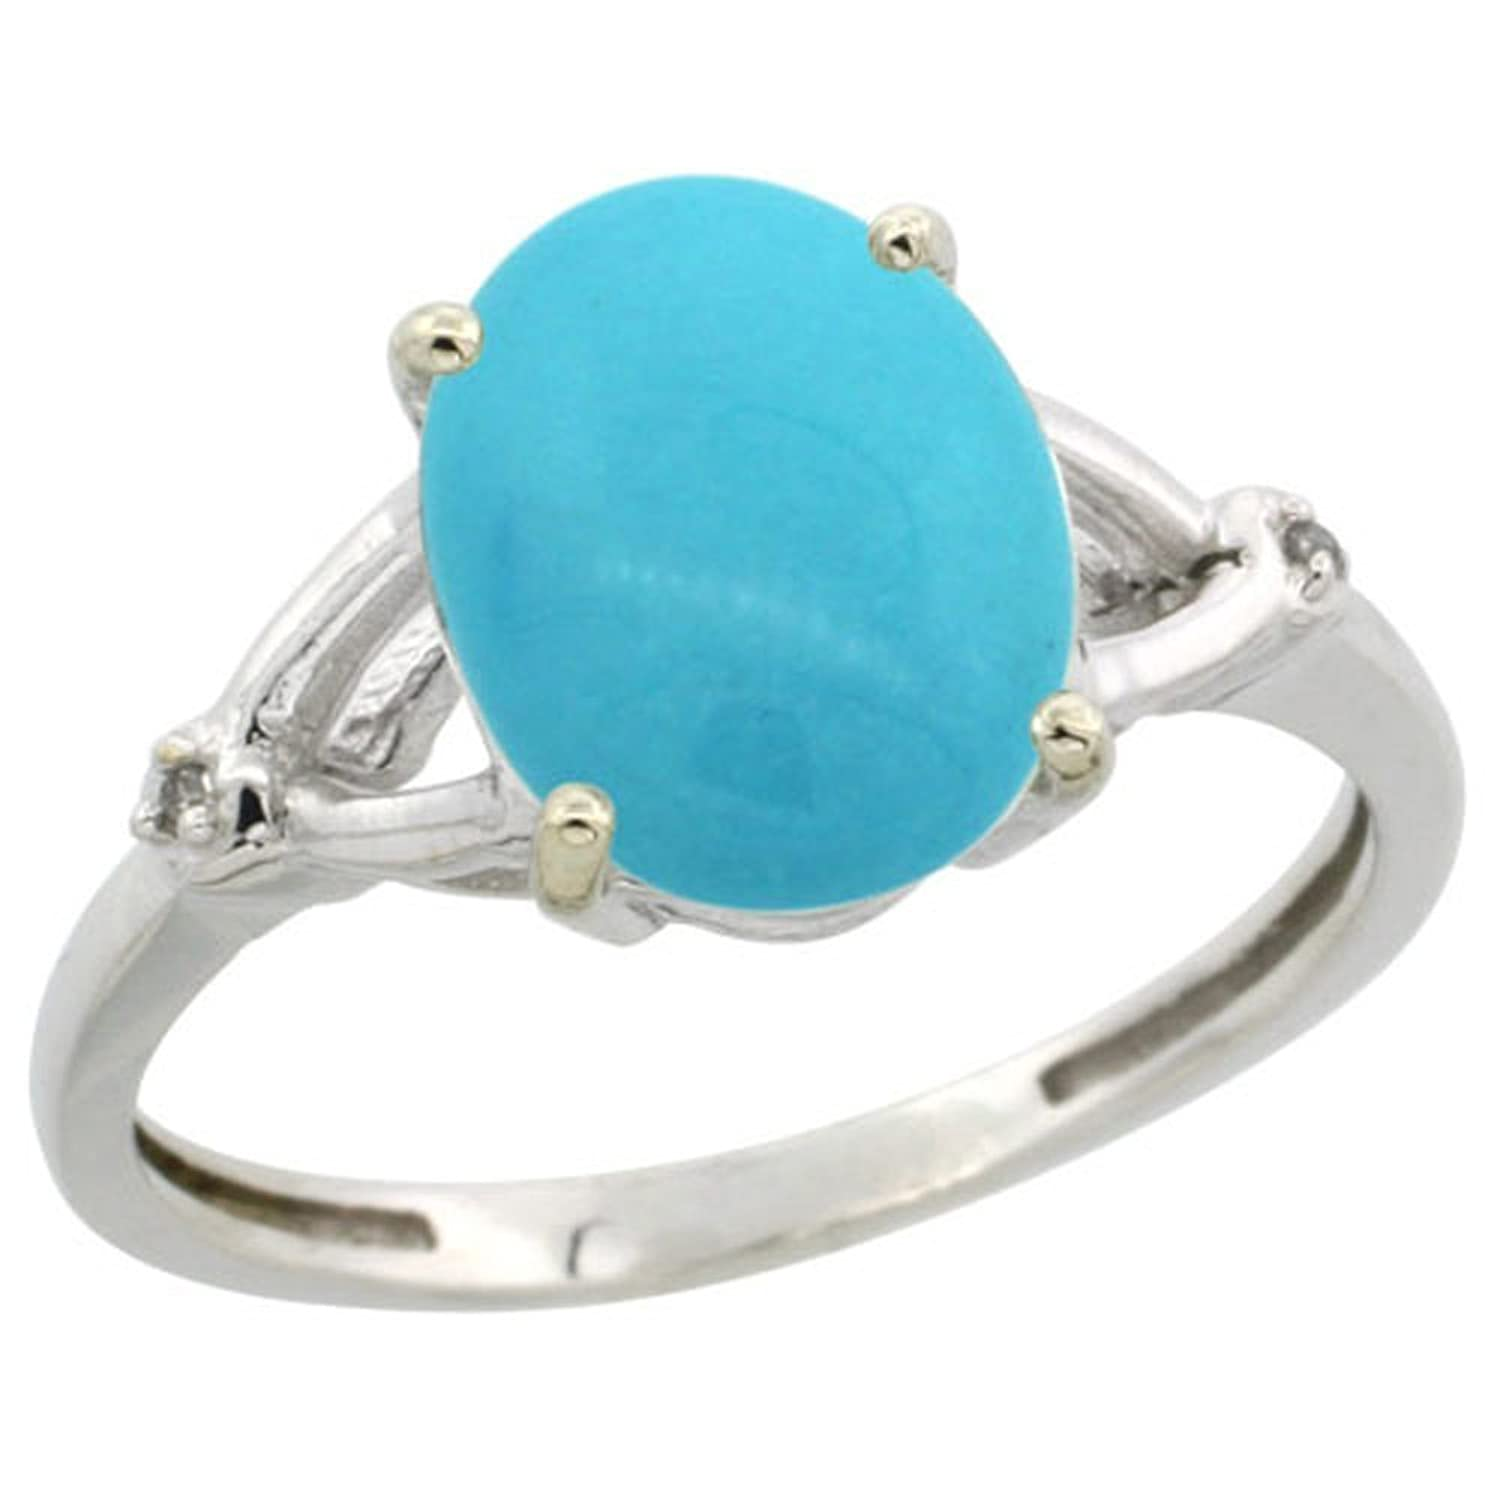 rita multi missy set turquoise rings silver stone empire